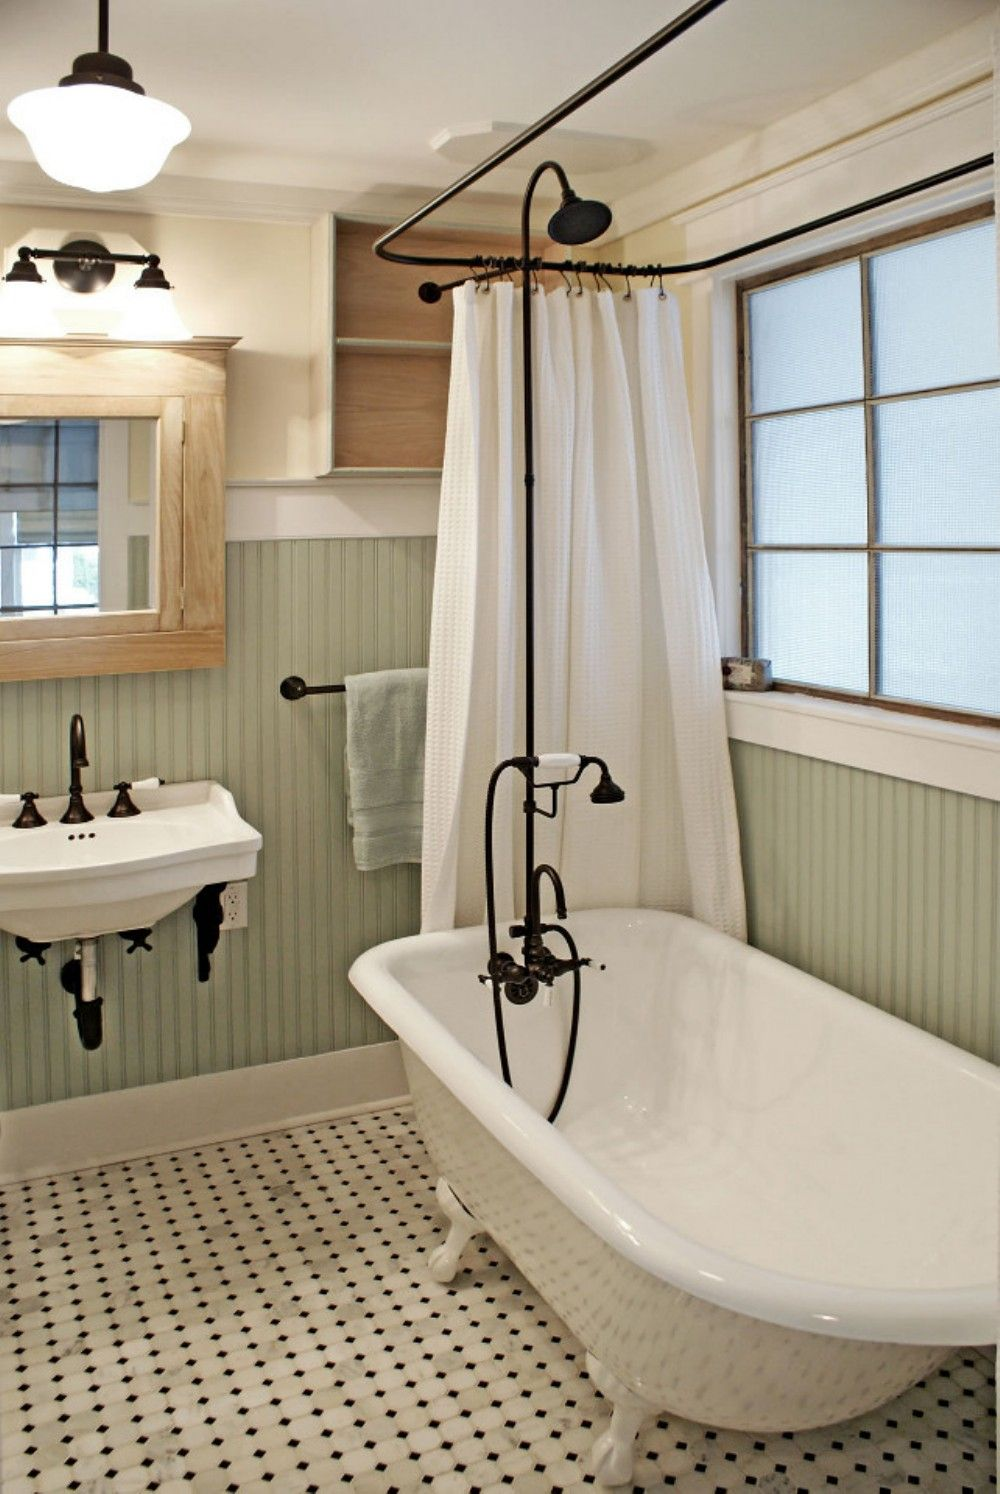 23 Amazing Ideas About Vintage Bathroom Vintage Bathroom Decor Farmhouse Bathroom Decor Tiny House Bathroom